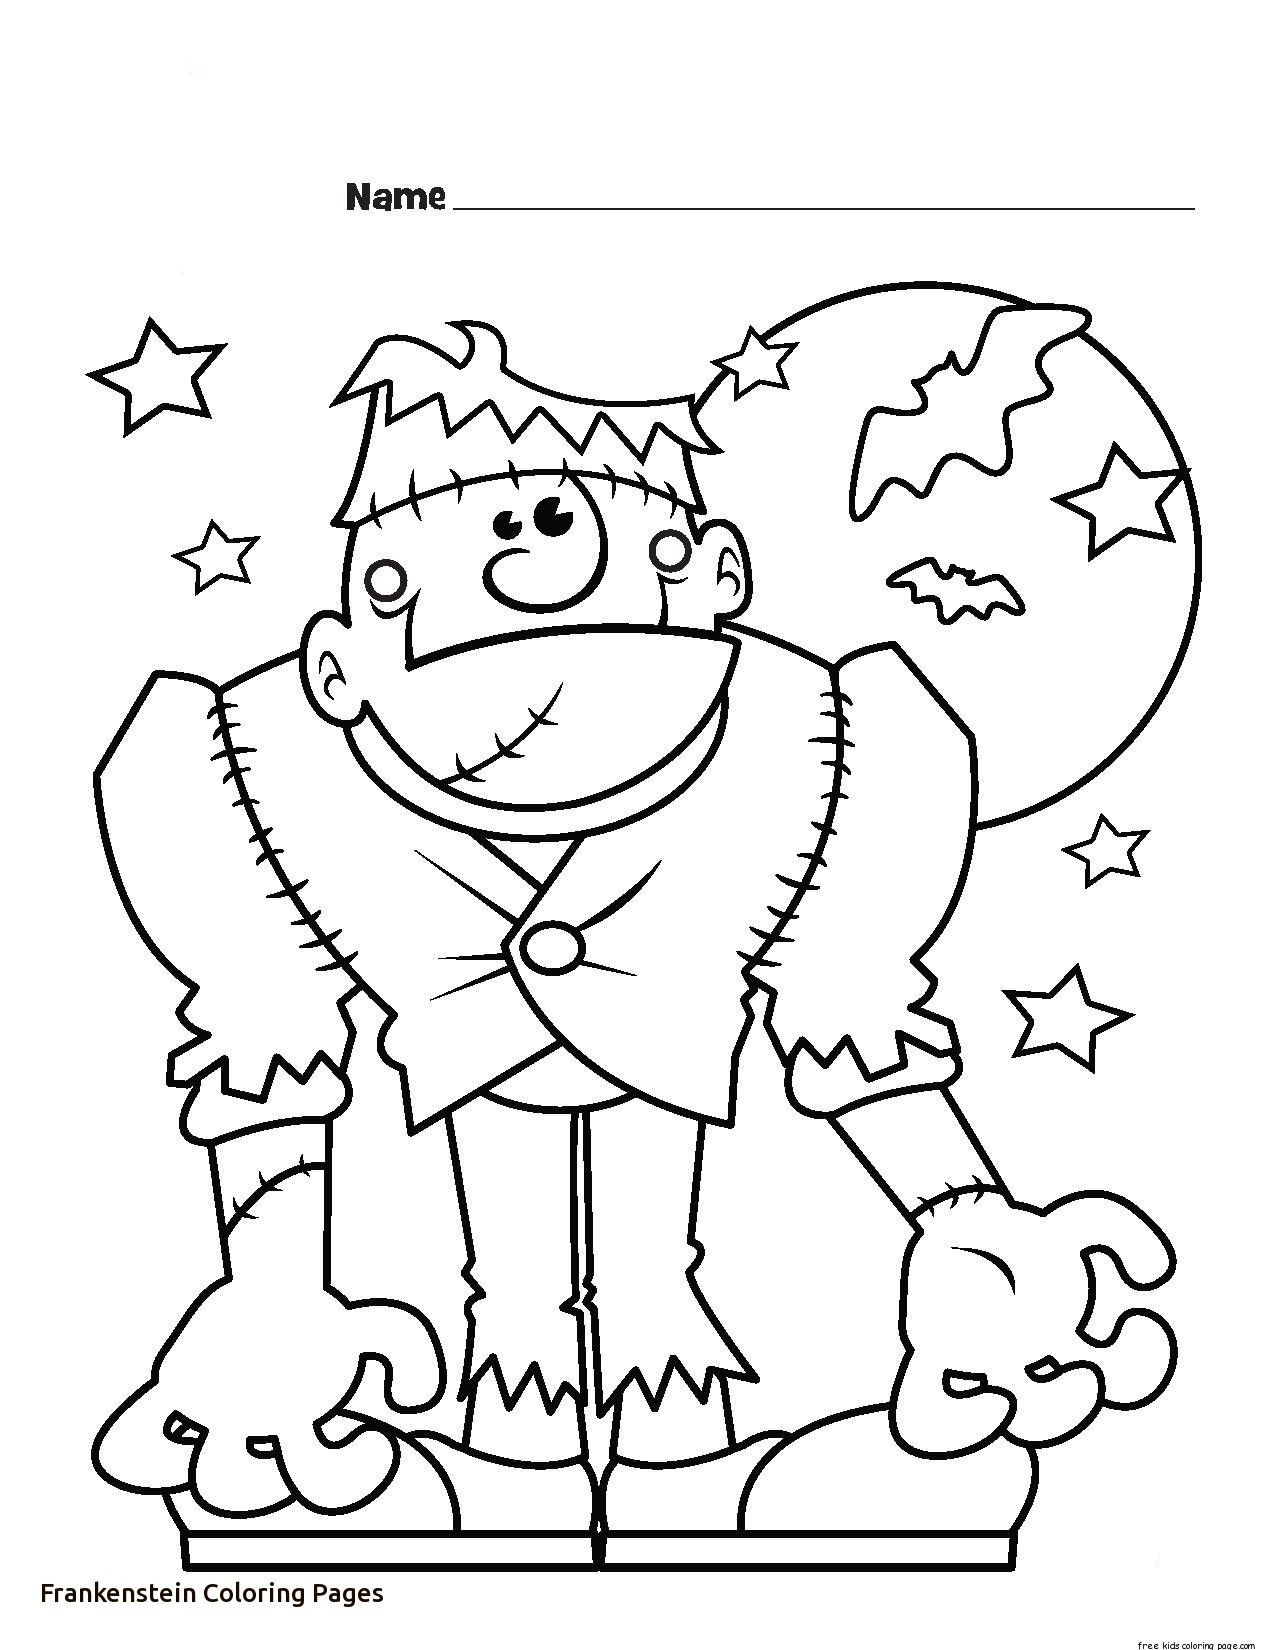 frankenstein coloring book pages scary frankenstein head coloring page free printable book frankenstein coloring pages